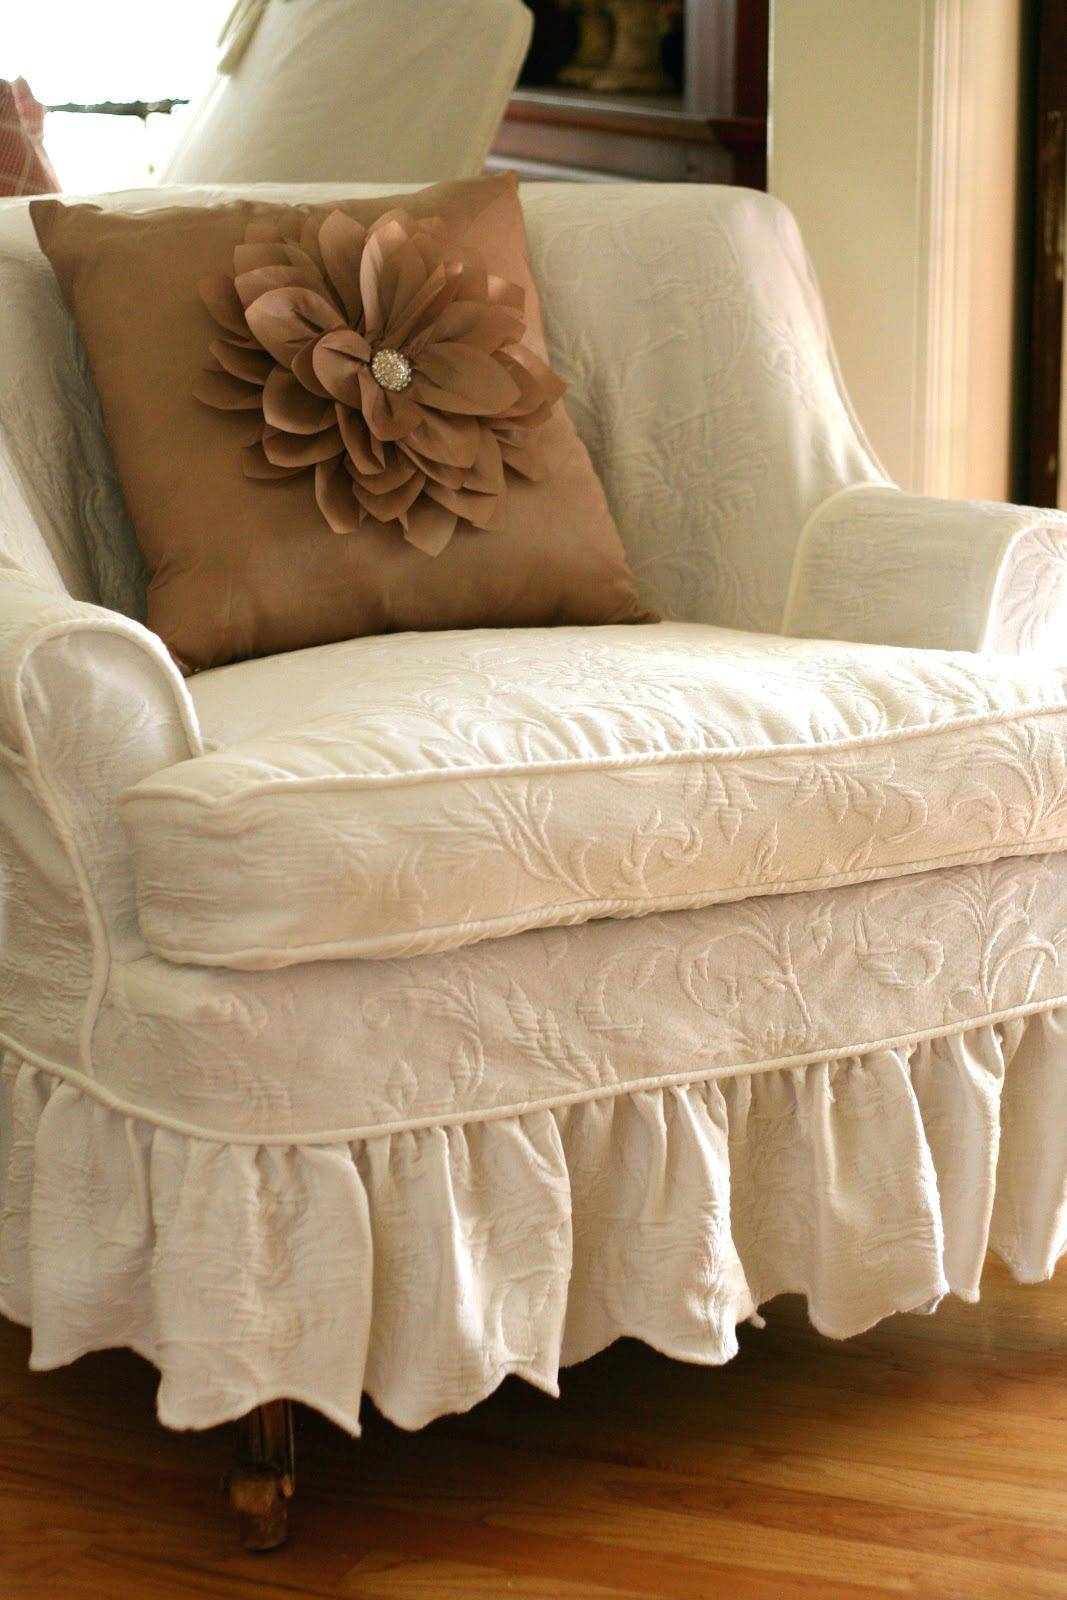 Shabby Chic Slipcovers For Wing Chairs Sale Target #2030 Gallery For Shabby Chic Sofa Slipcovers (View 8 of 15)